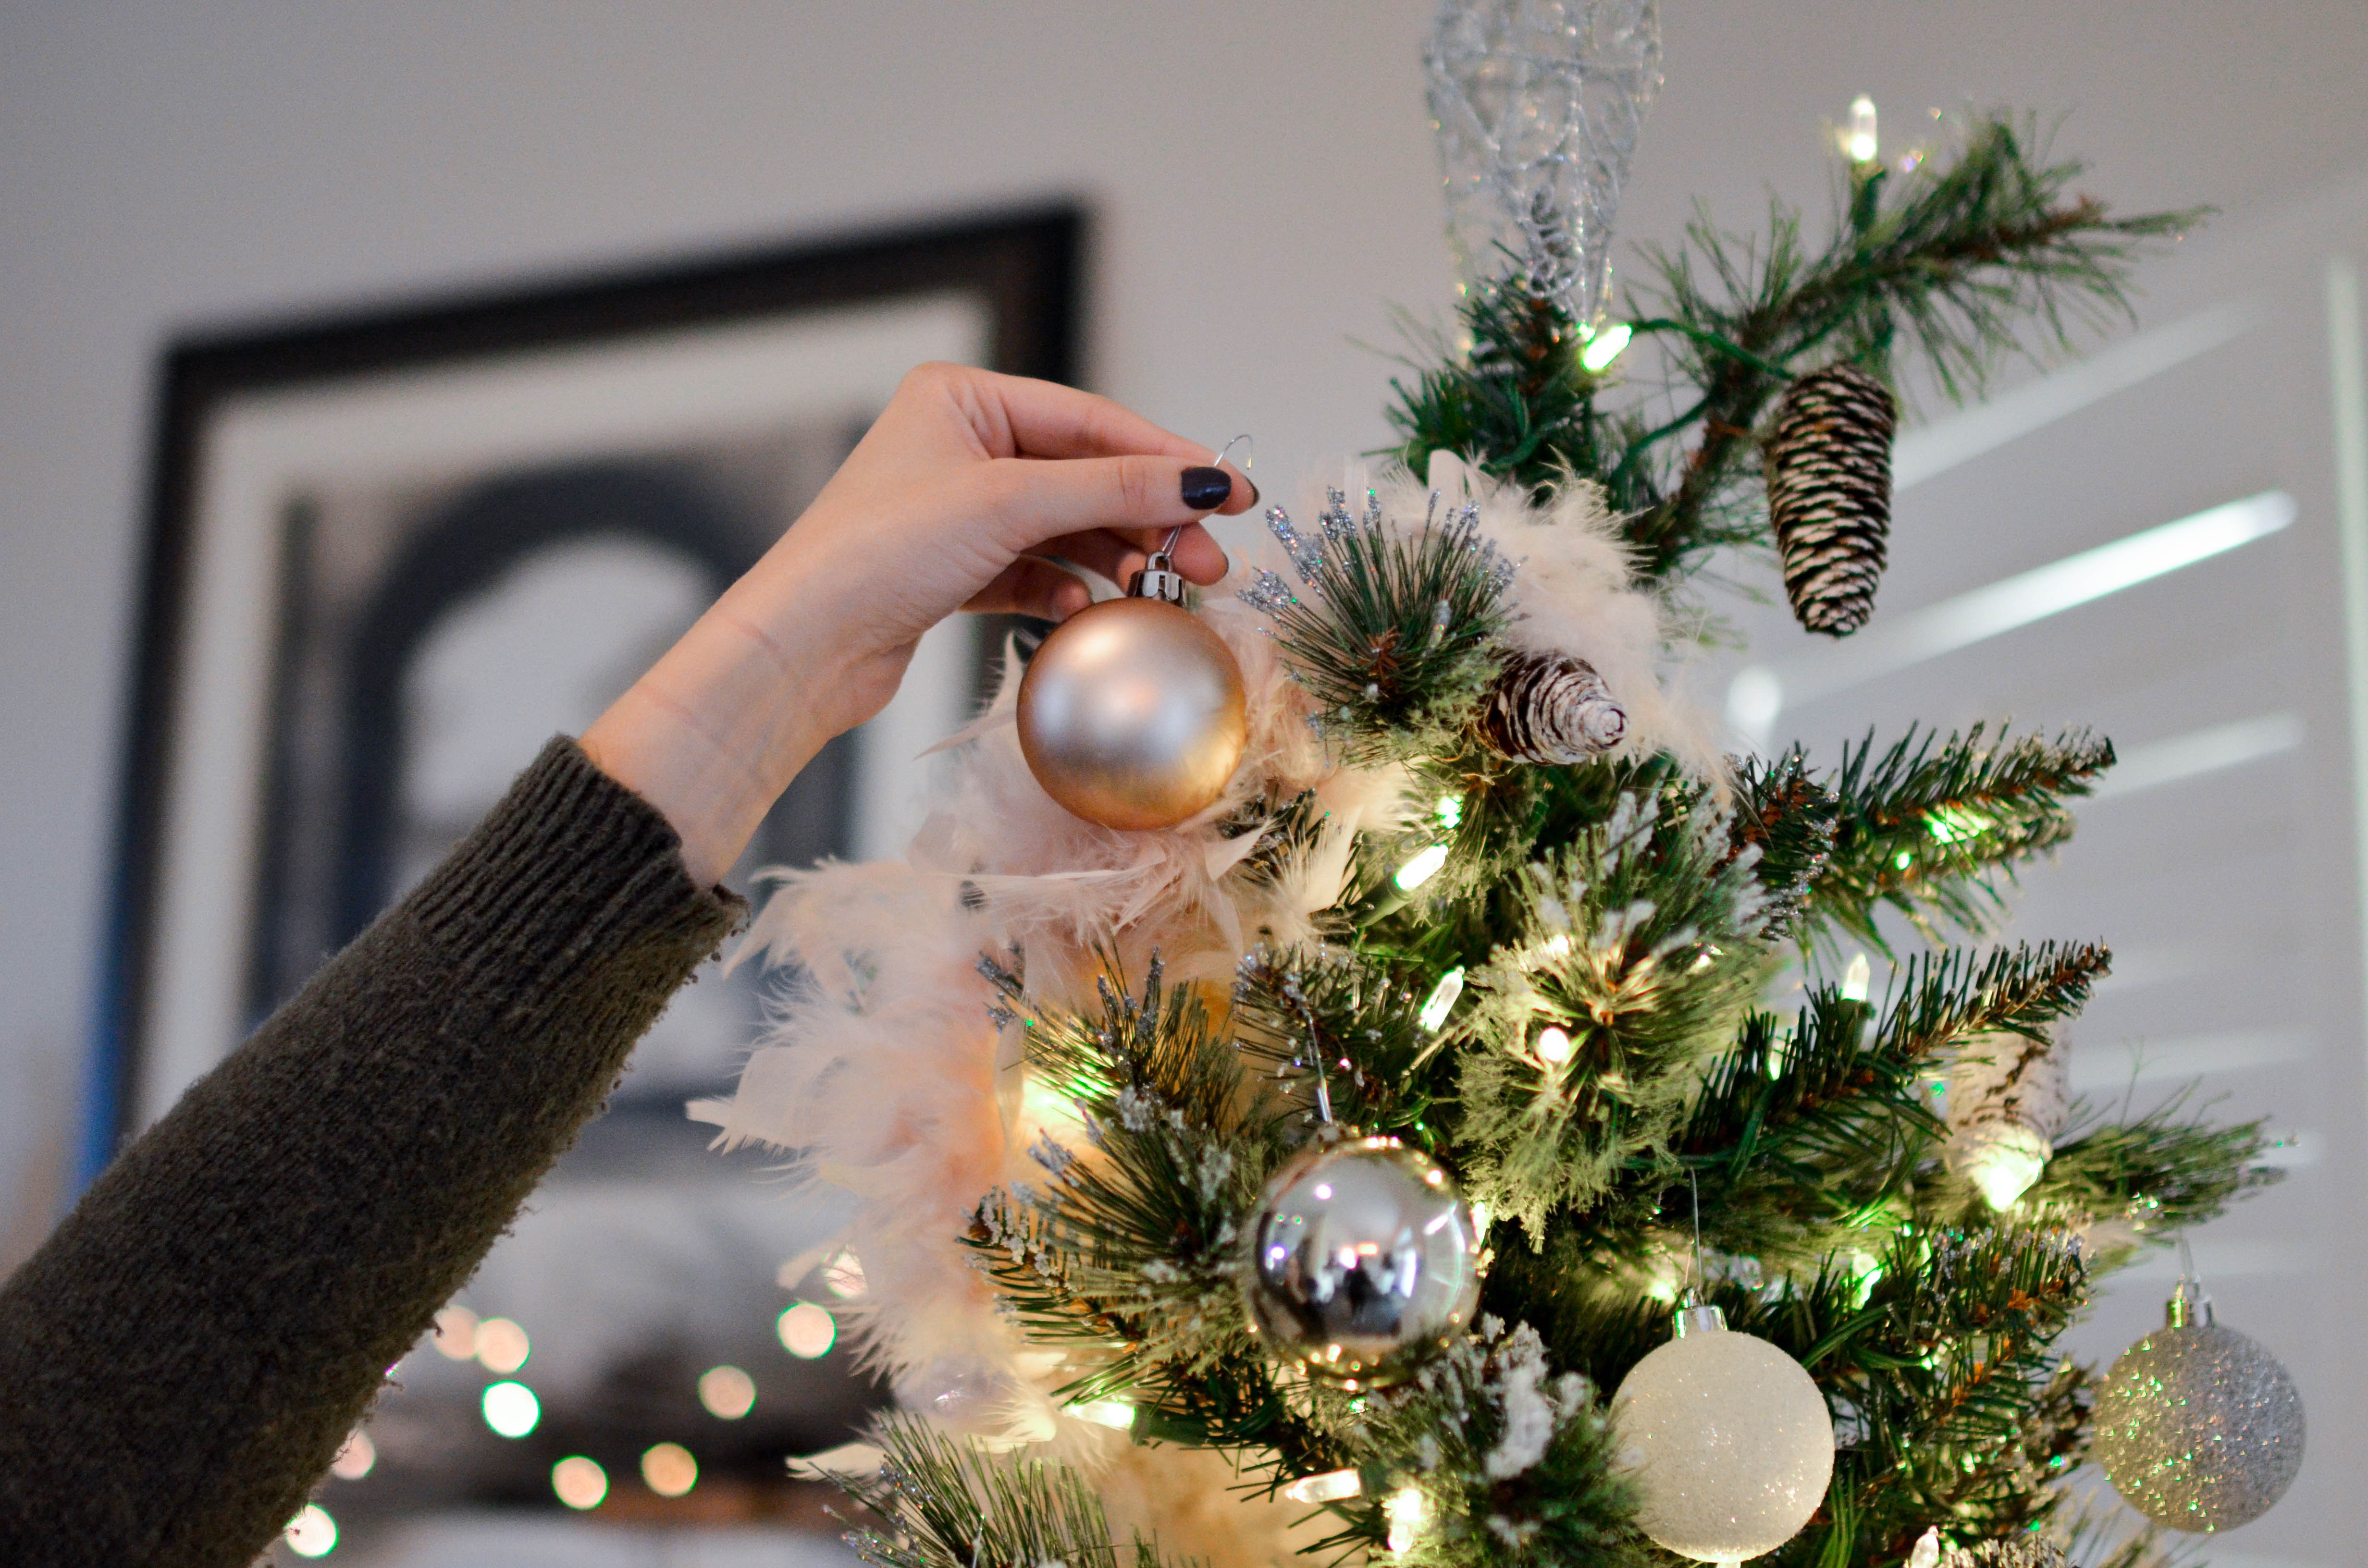 Amazon selling and shipping live Christmas trees this holiday season, like this one getting decorated